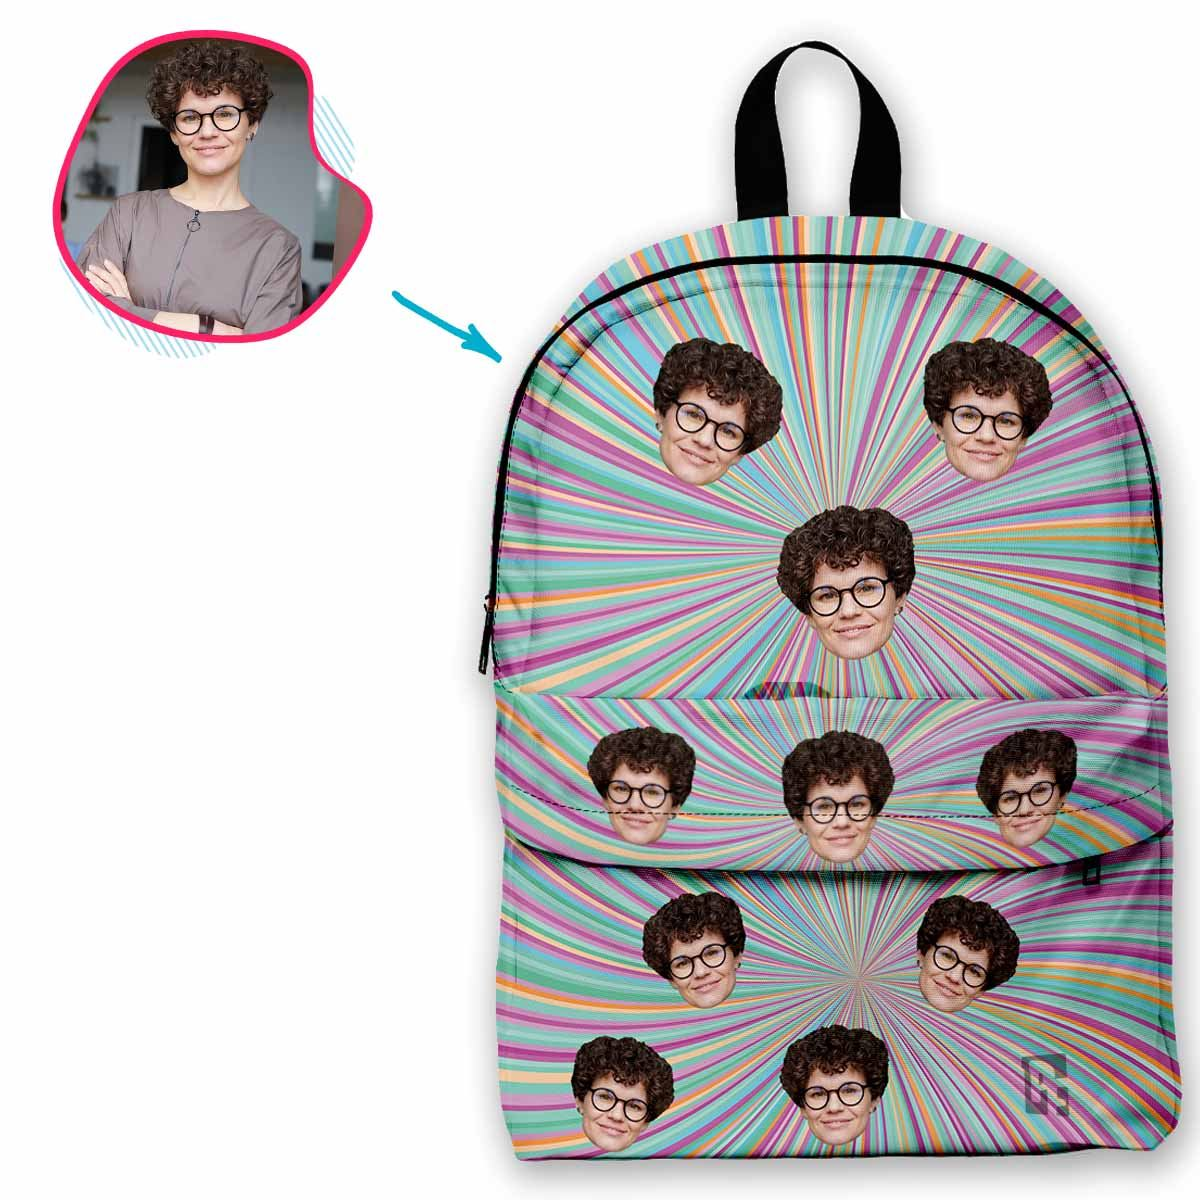 cat mash classic backpack personalized with photo of face printed on it